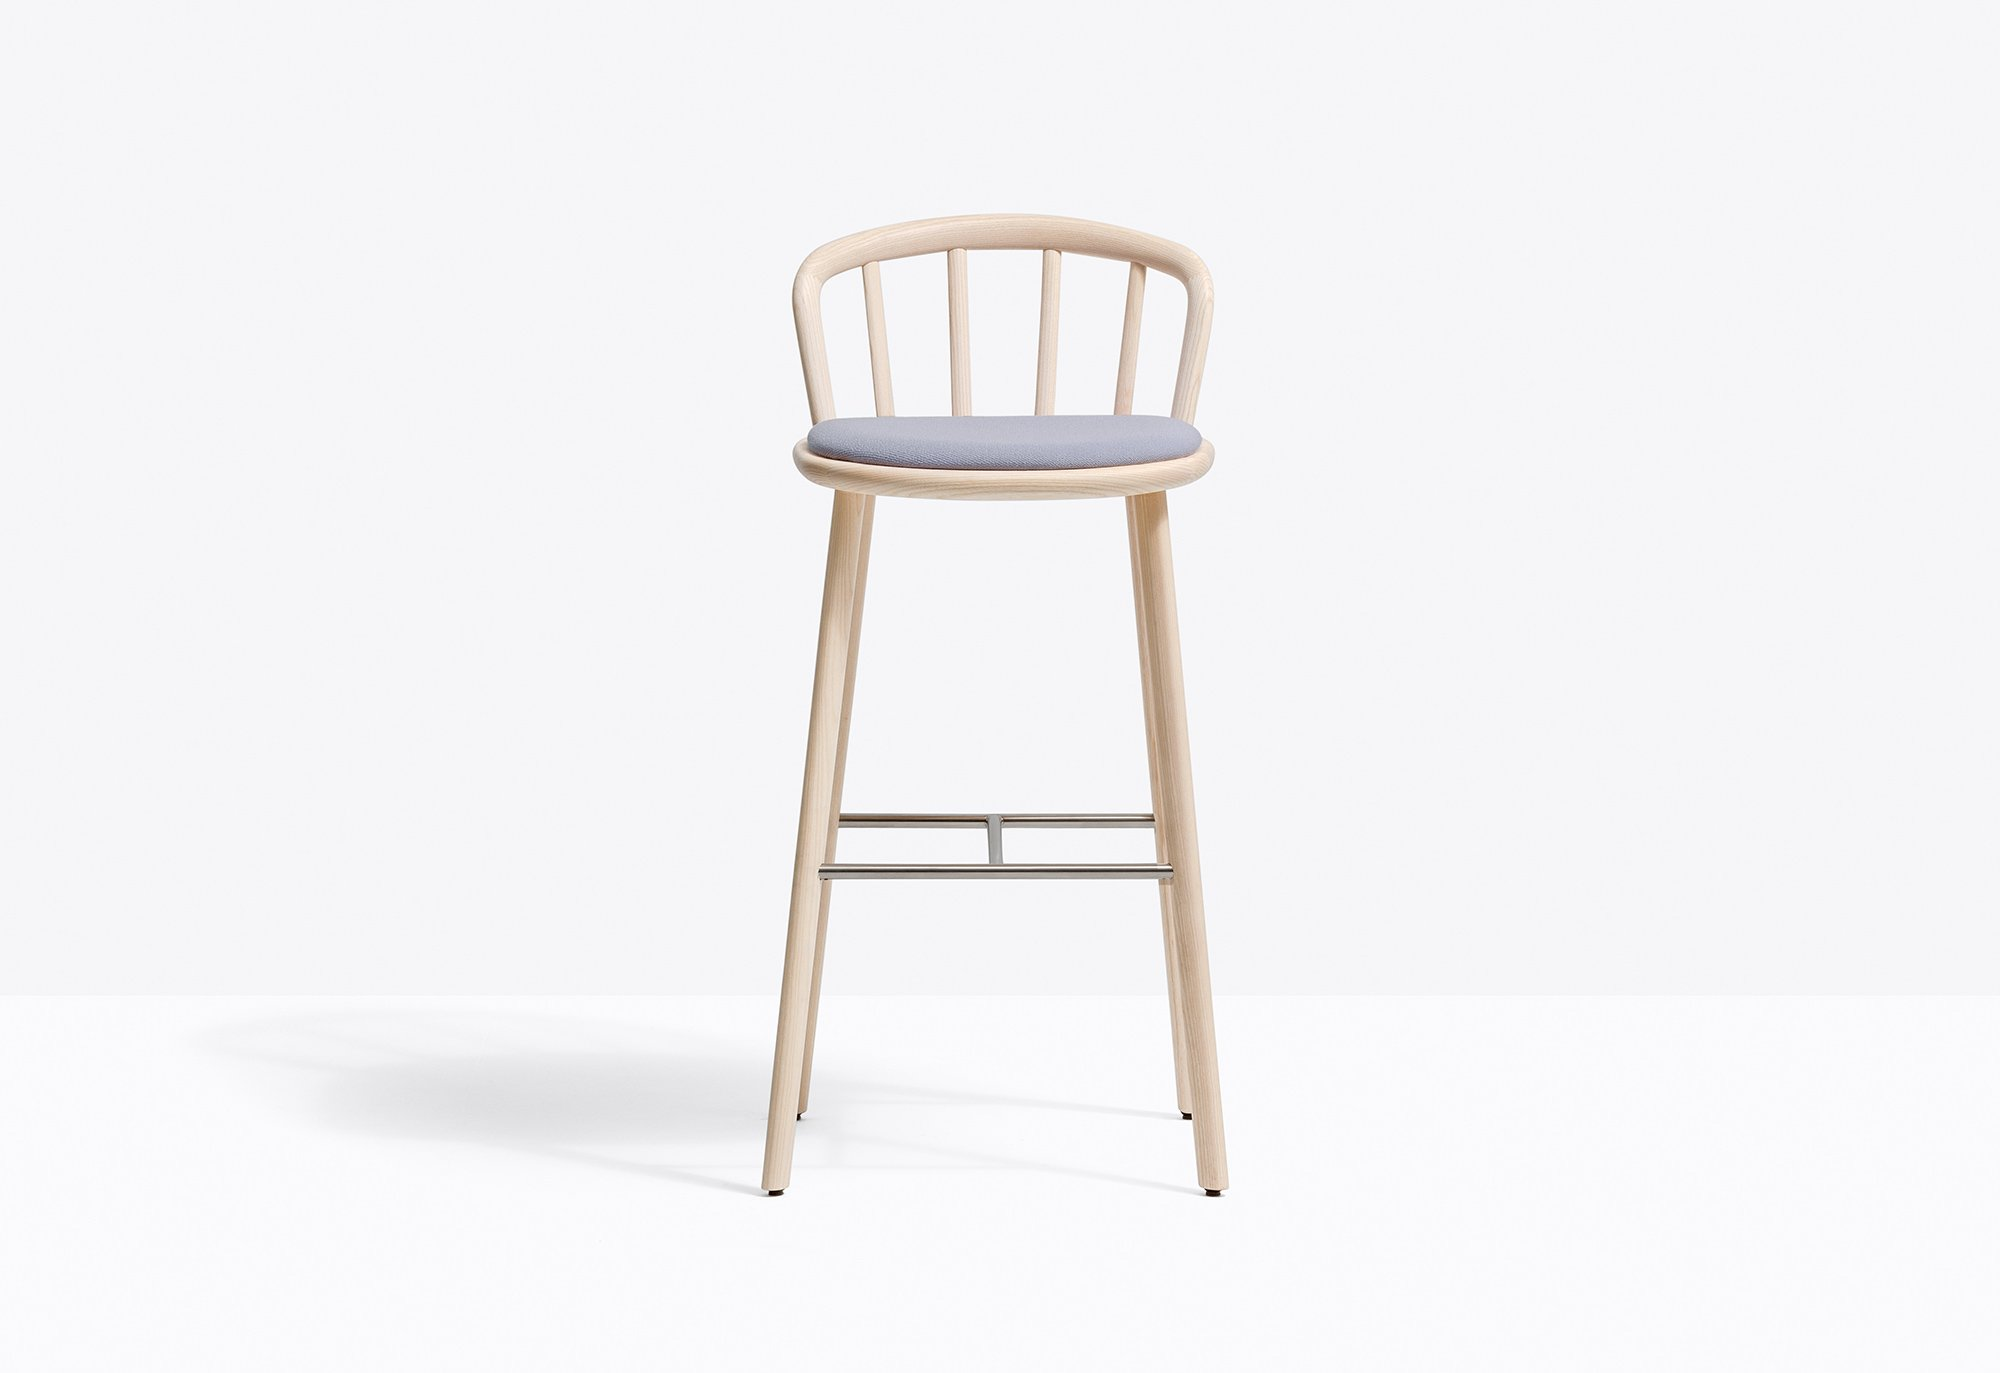 NYM Barstool from Pedrali, designed by CMP Design